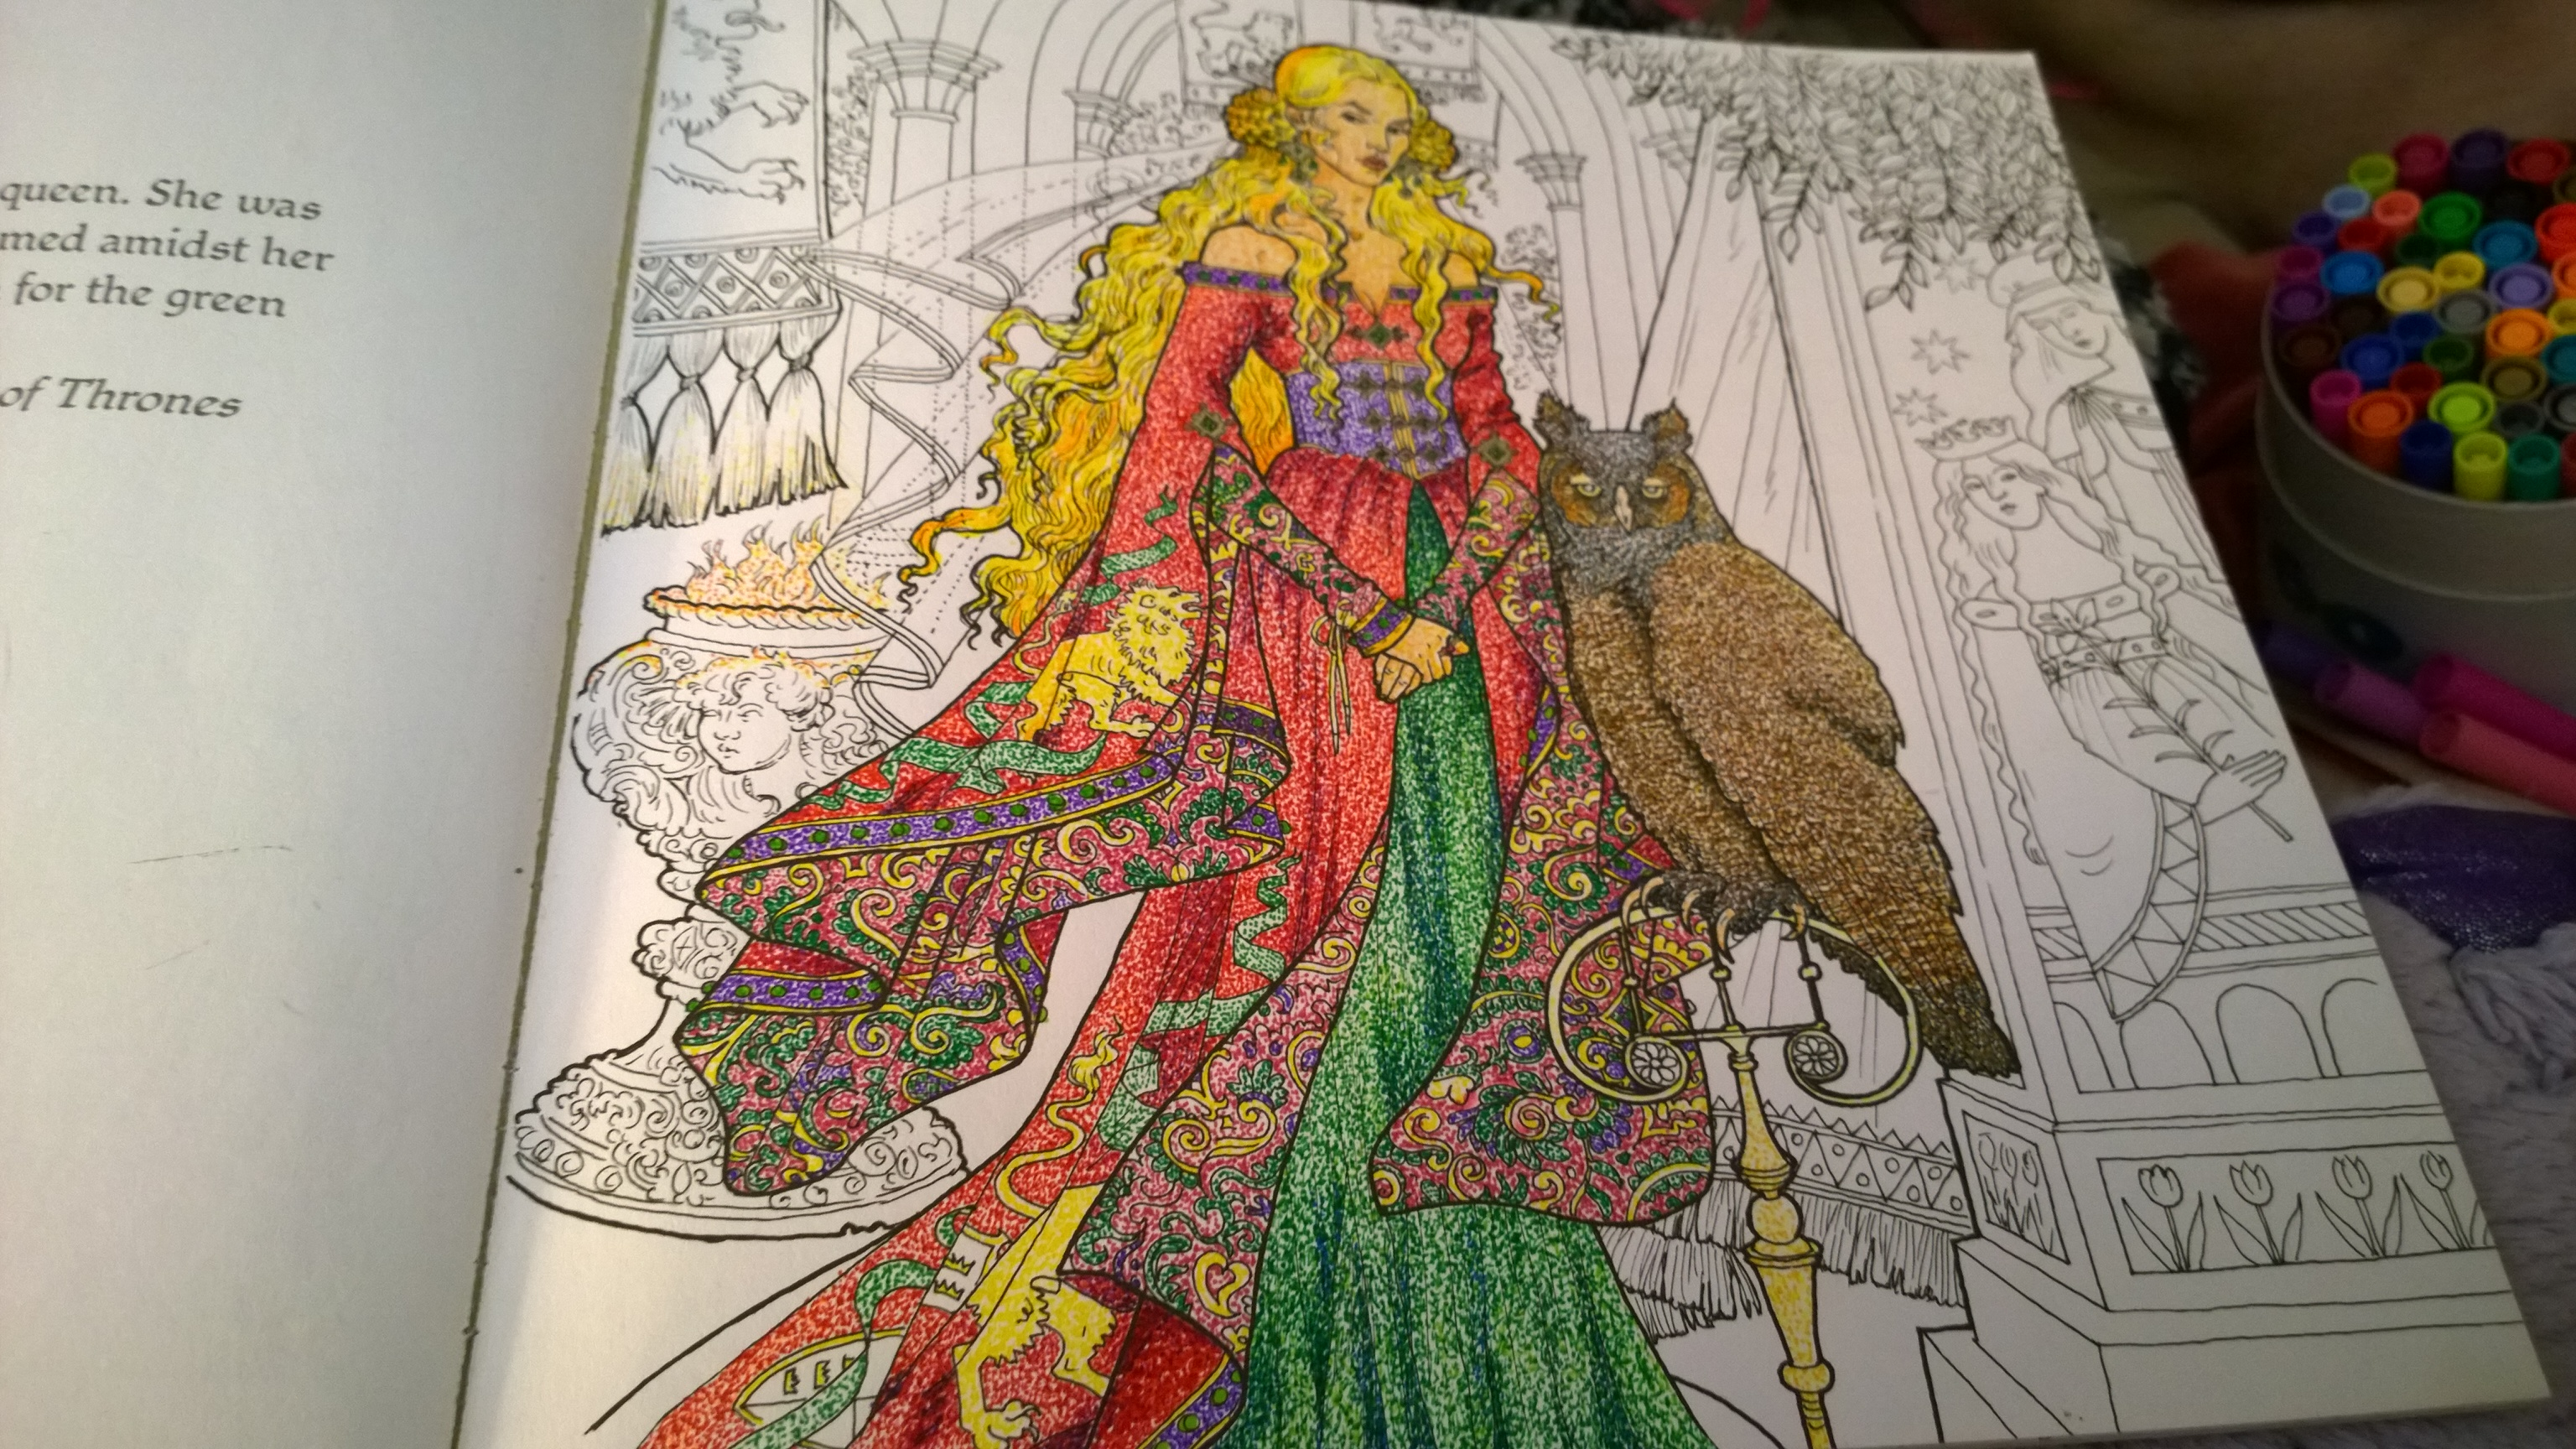 Photo of a page in the Game of Thrones coloring book, featuring Cersei and an owl. Cersei and the owl are stippled, but much of the background has yet to be colored in